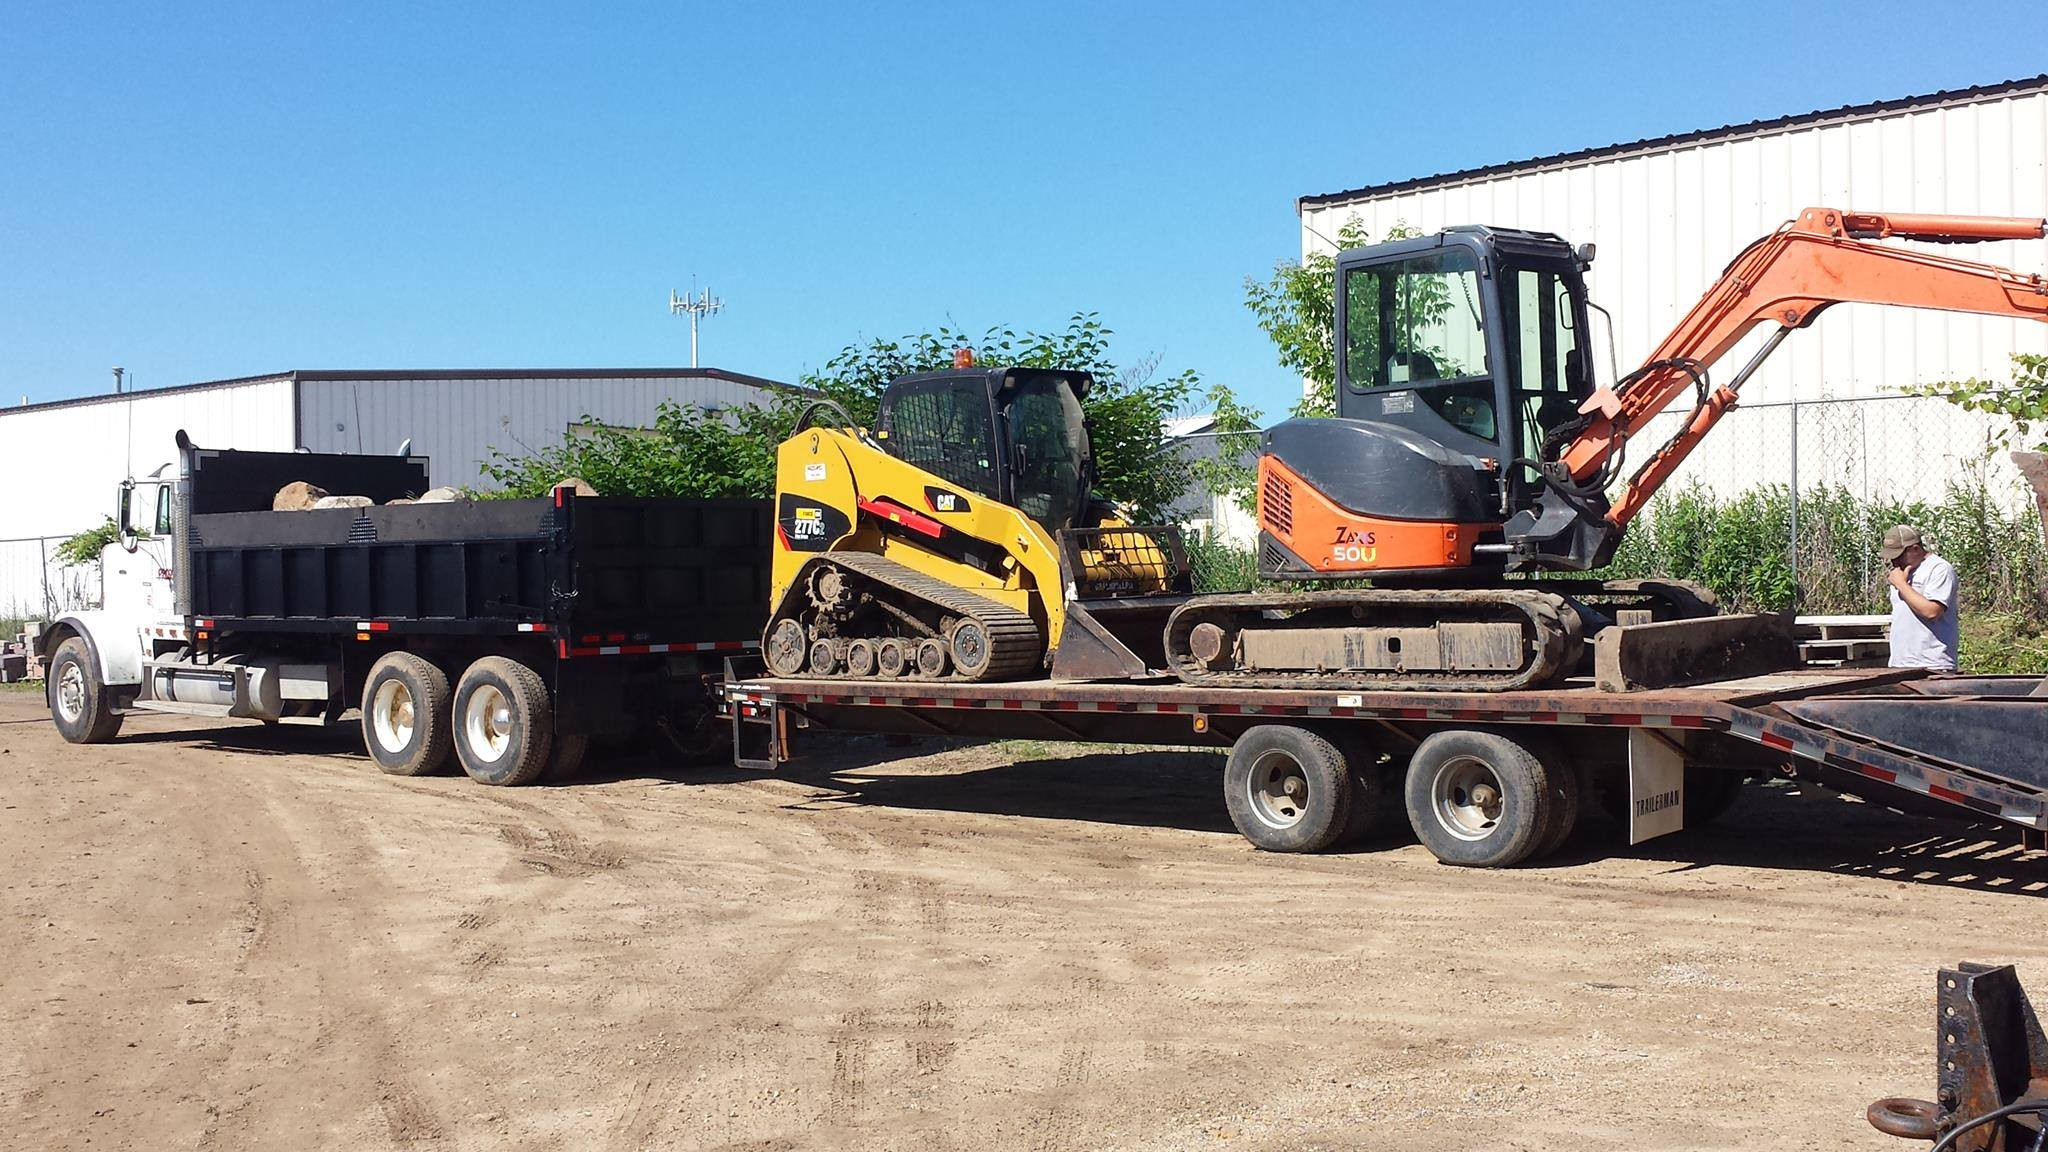 Madison WI top landscaping company for excavation and grading